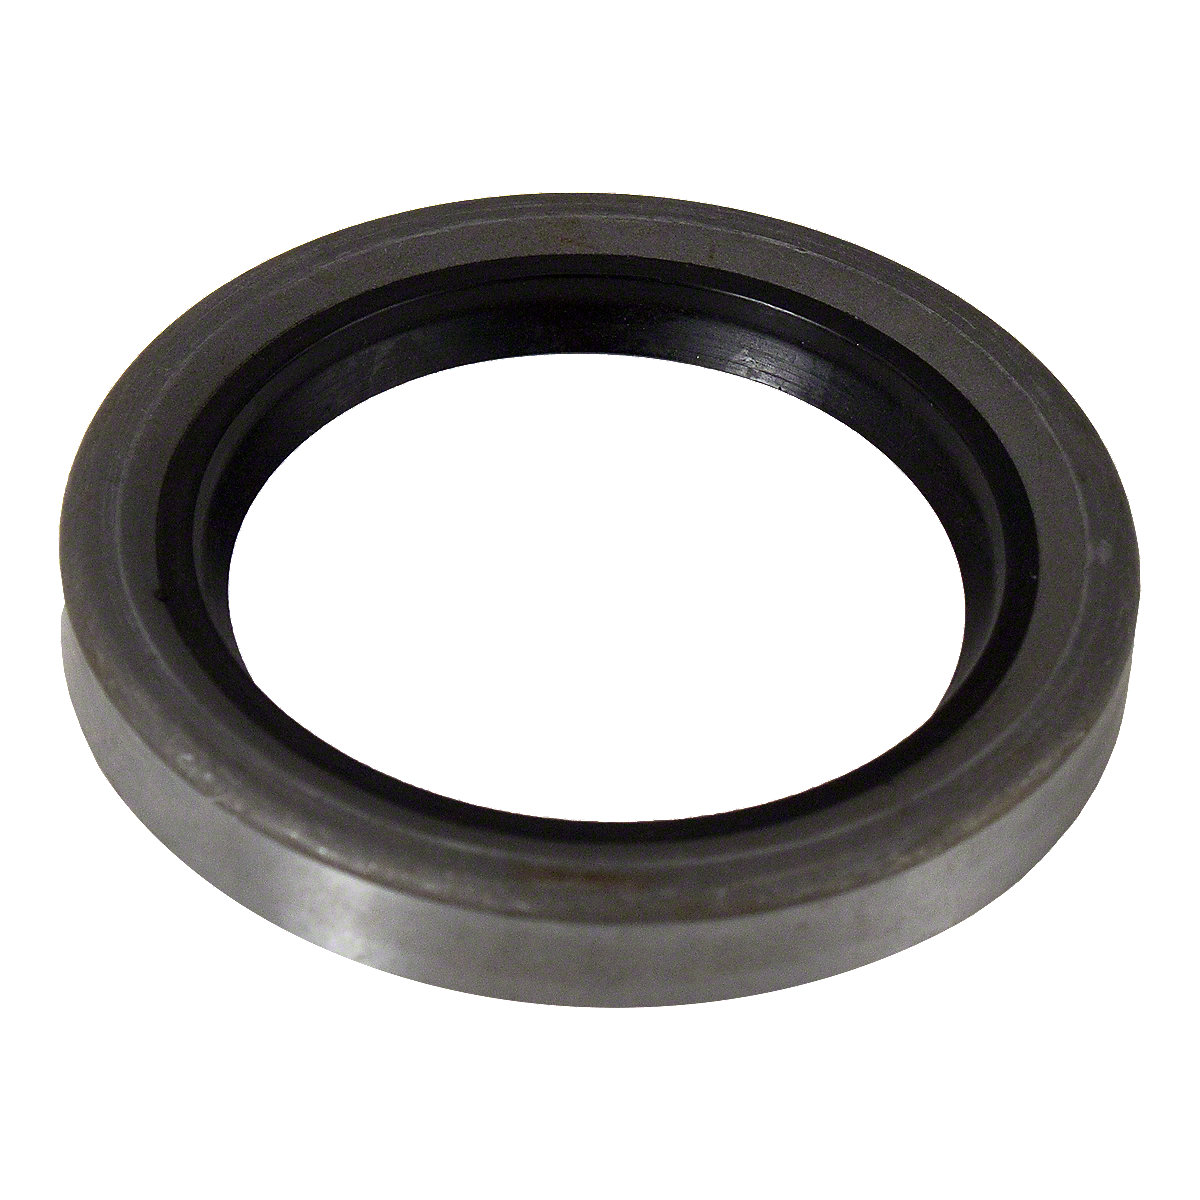 Front Crankshaft Seal For Massey Ferguson: 20C,  35, 135, 150, 230, 235, 245, 40, TO35, 50, TO20, TO30, Massey Harris: Colt 21, Mustang 23, 101 Jr, 102 Jr, 20, 22, 30, 50, 81, 82,.